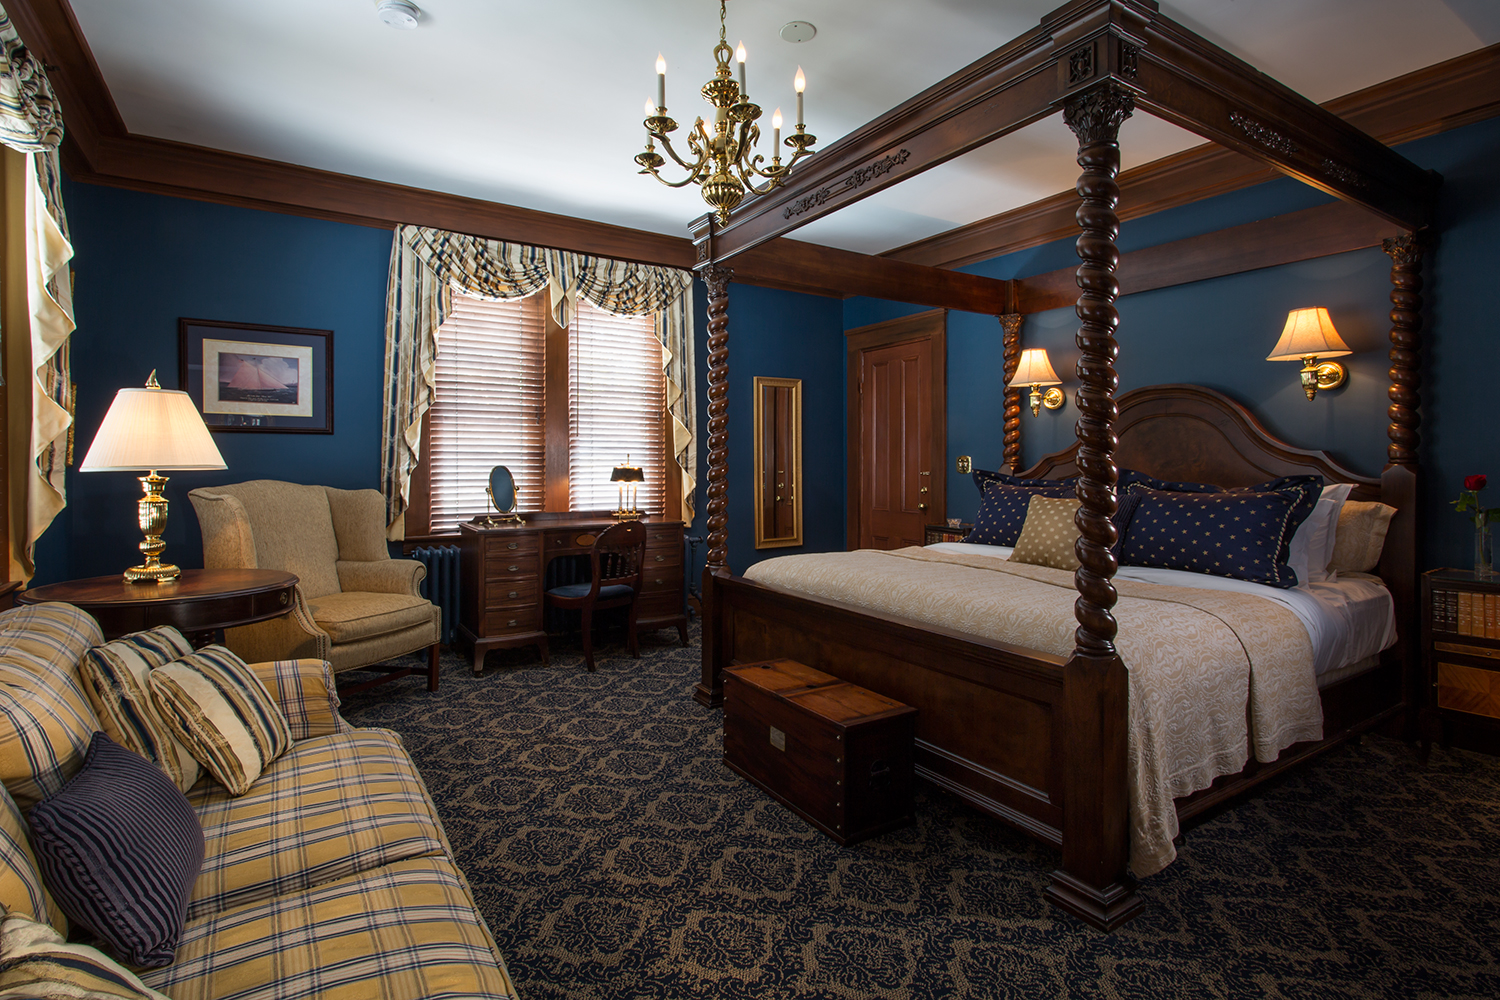 Oliver-Hazard-Perry-Review-La-Farge-Perry-House